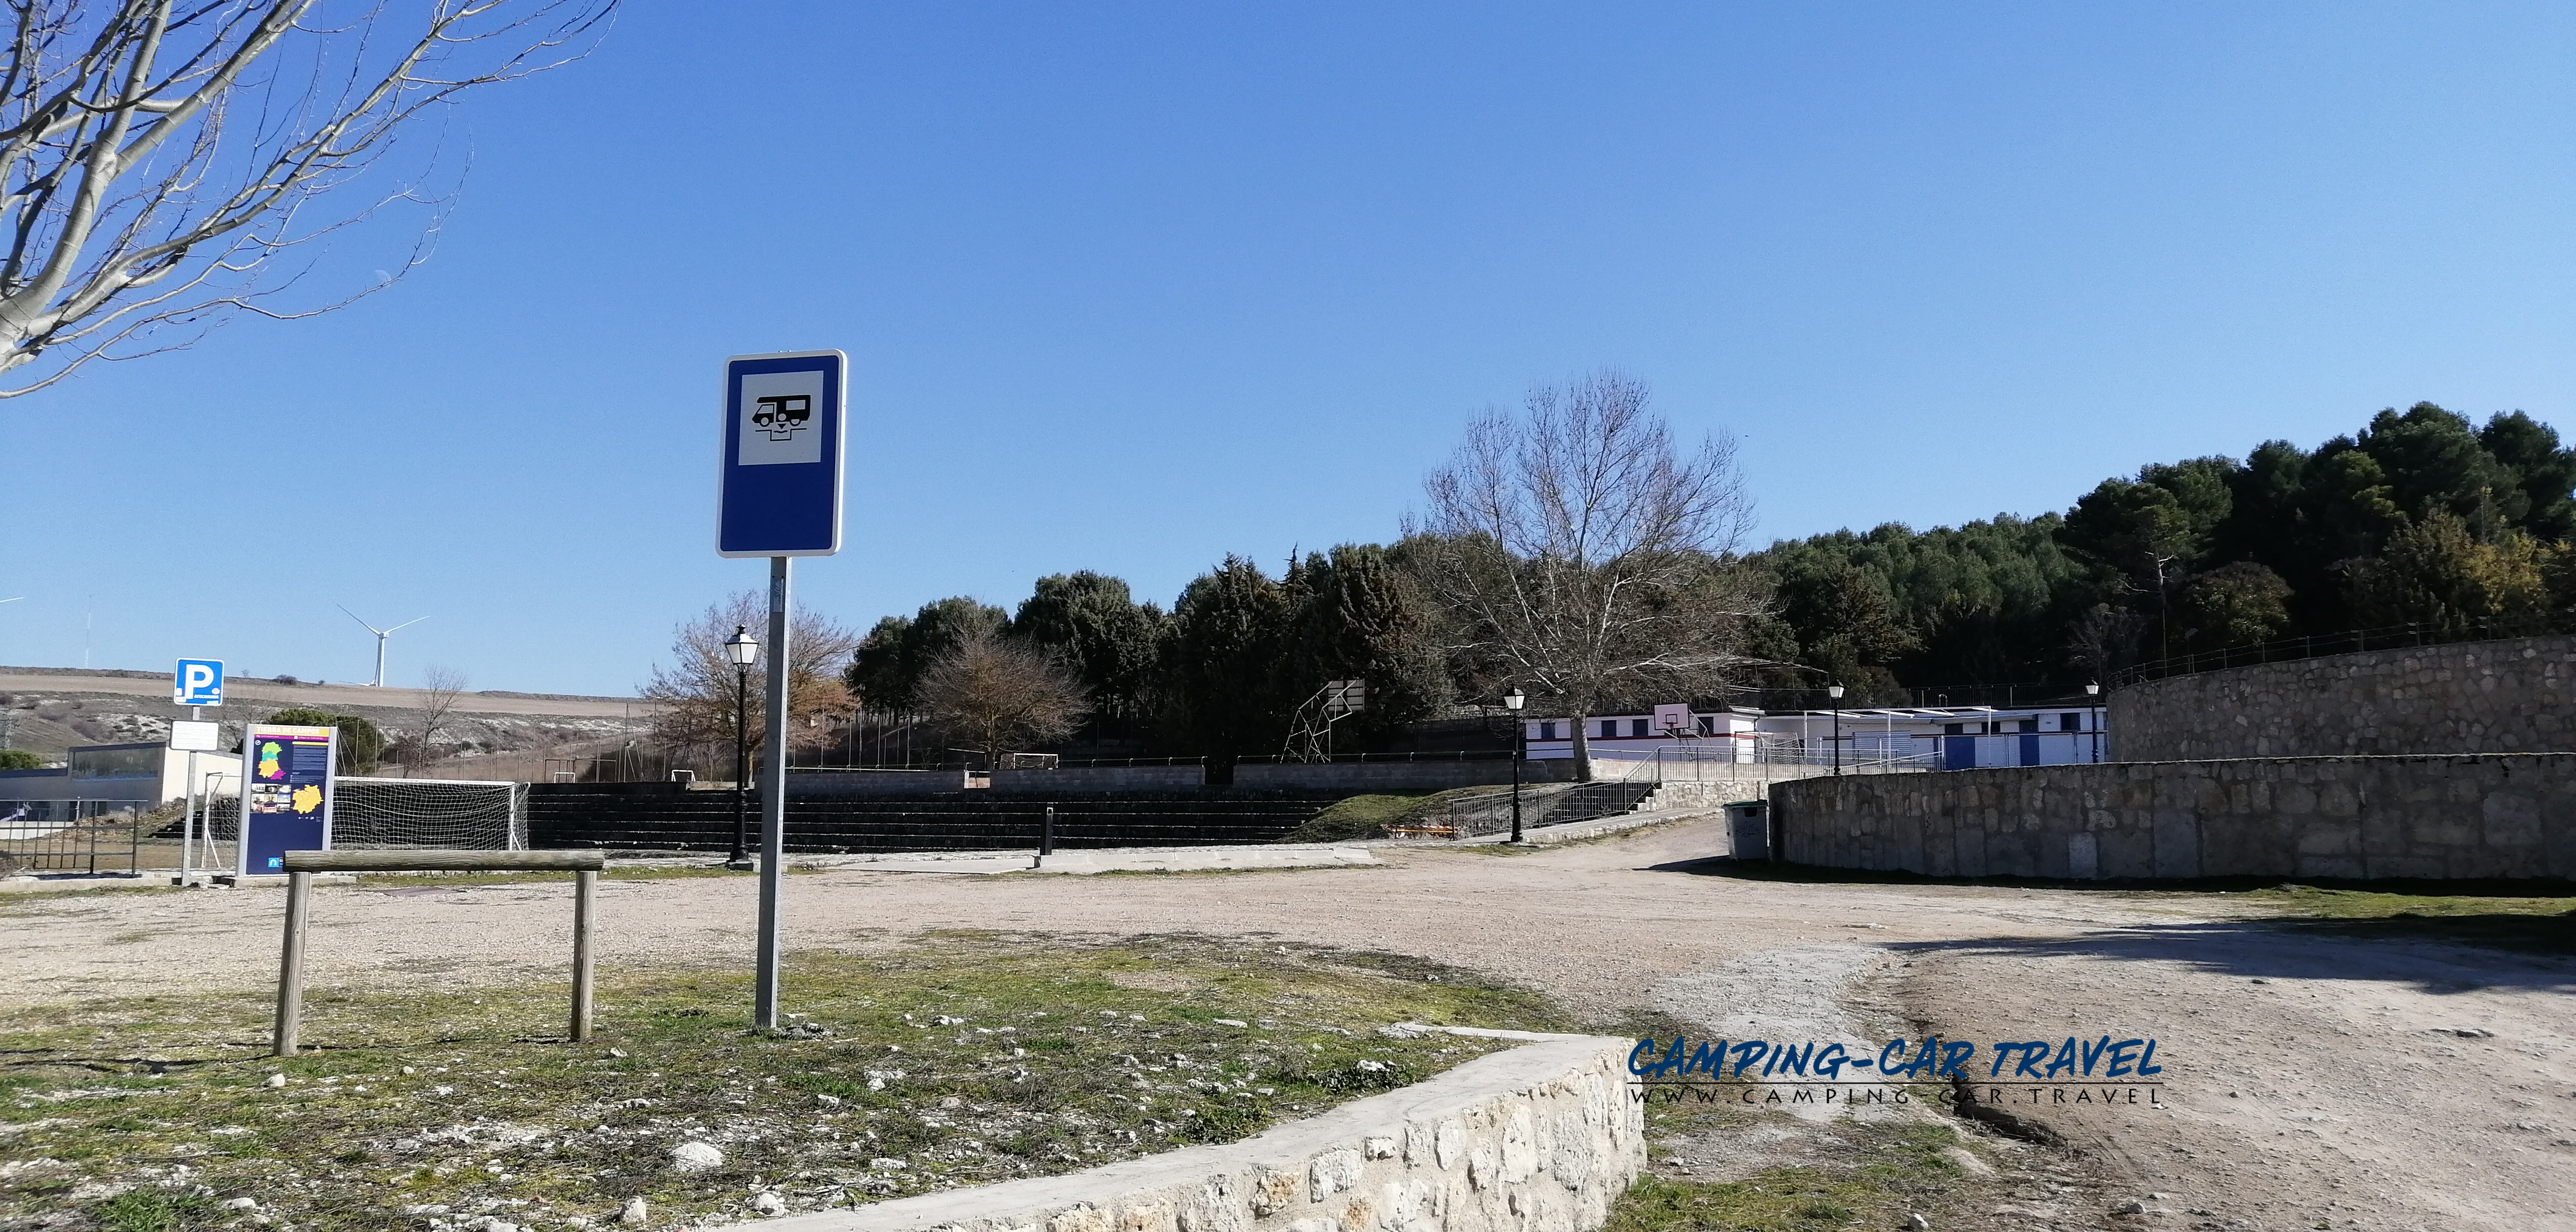 aire services camping-cars Ampudia Espagne Spain